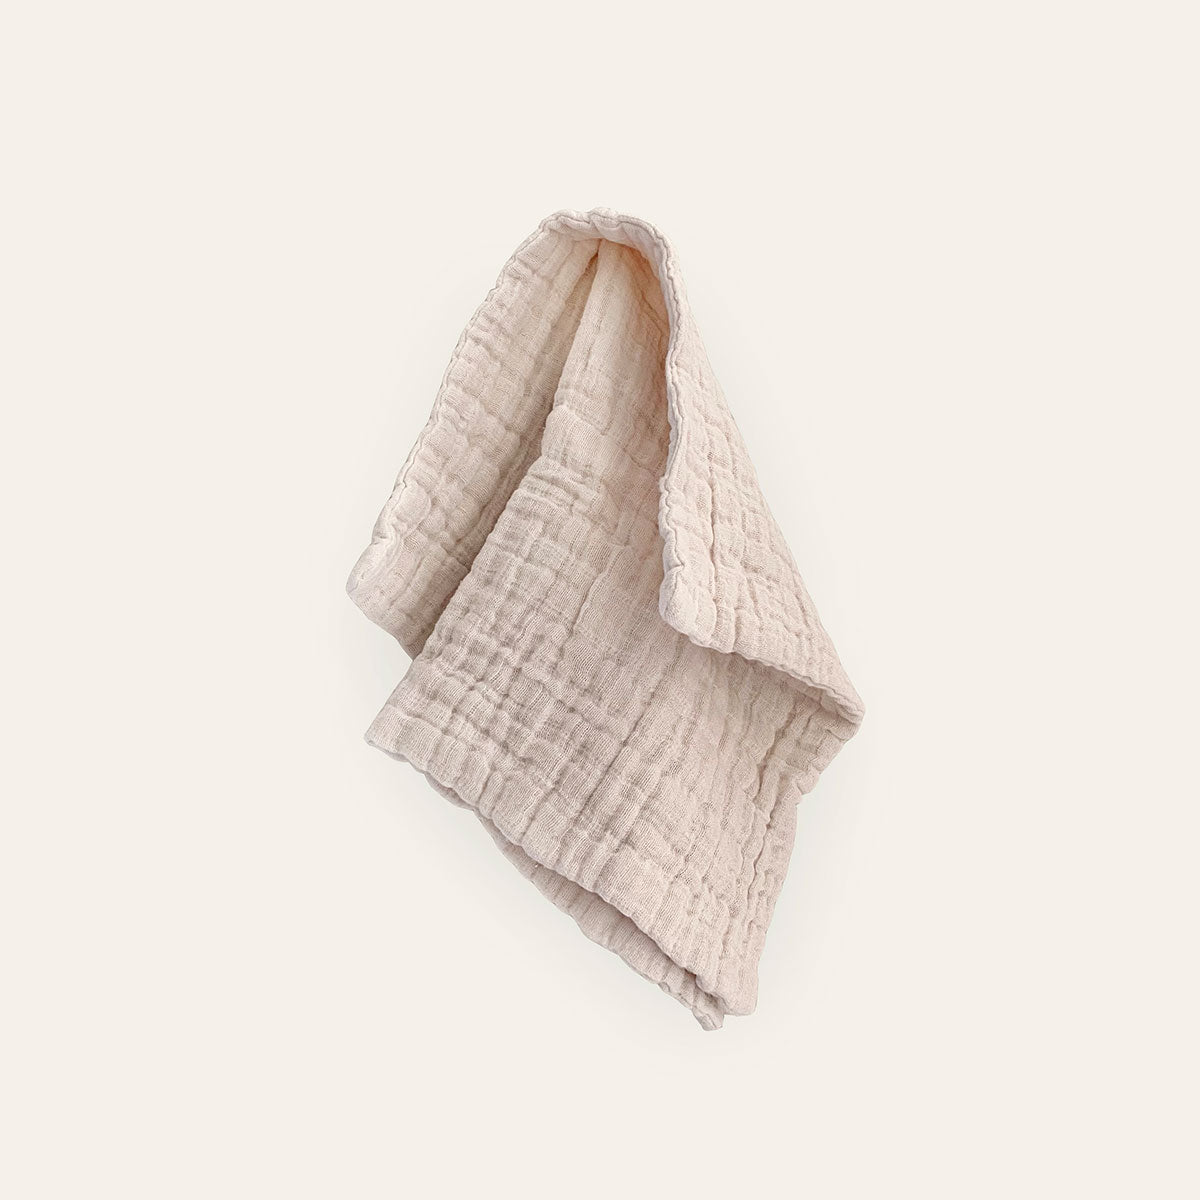 Burp Cloth, natural